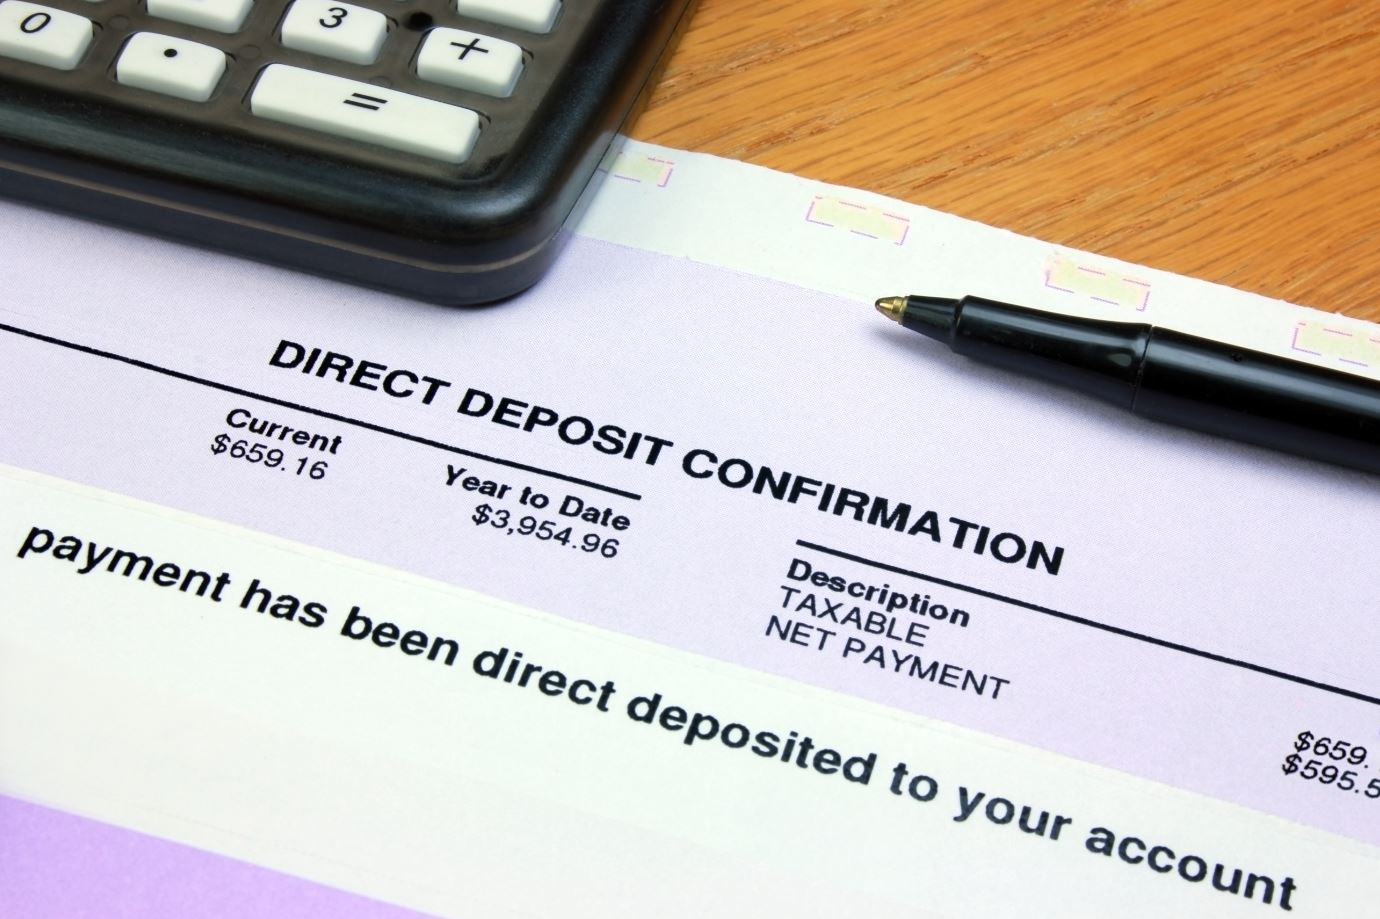 Direct Deposit Confirmation Form